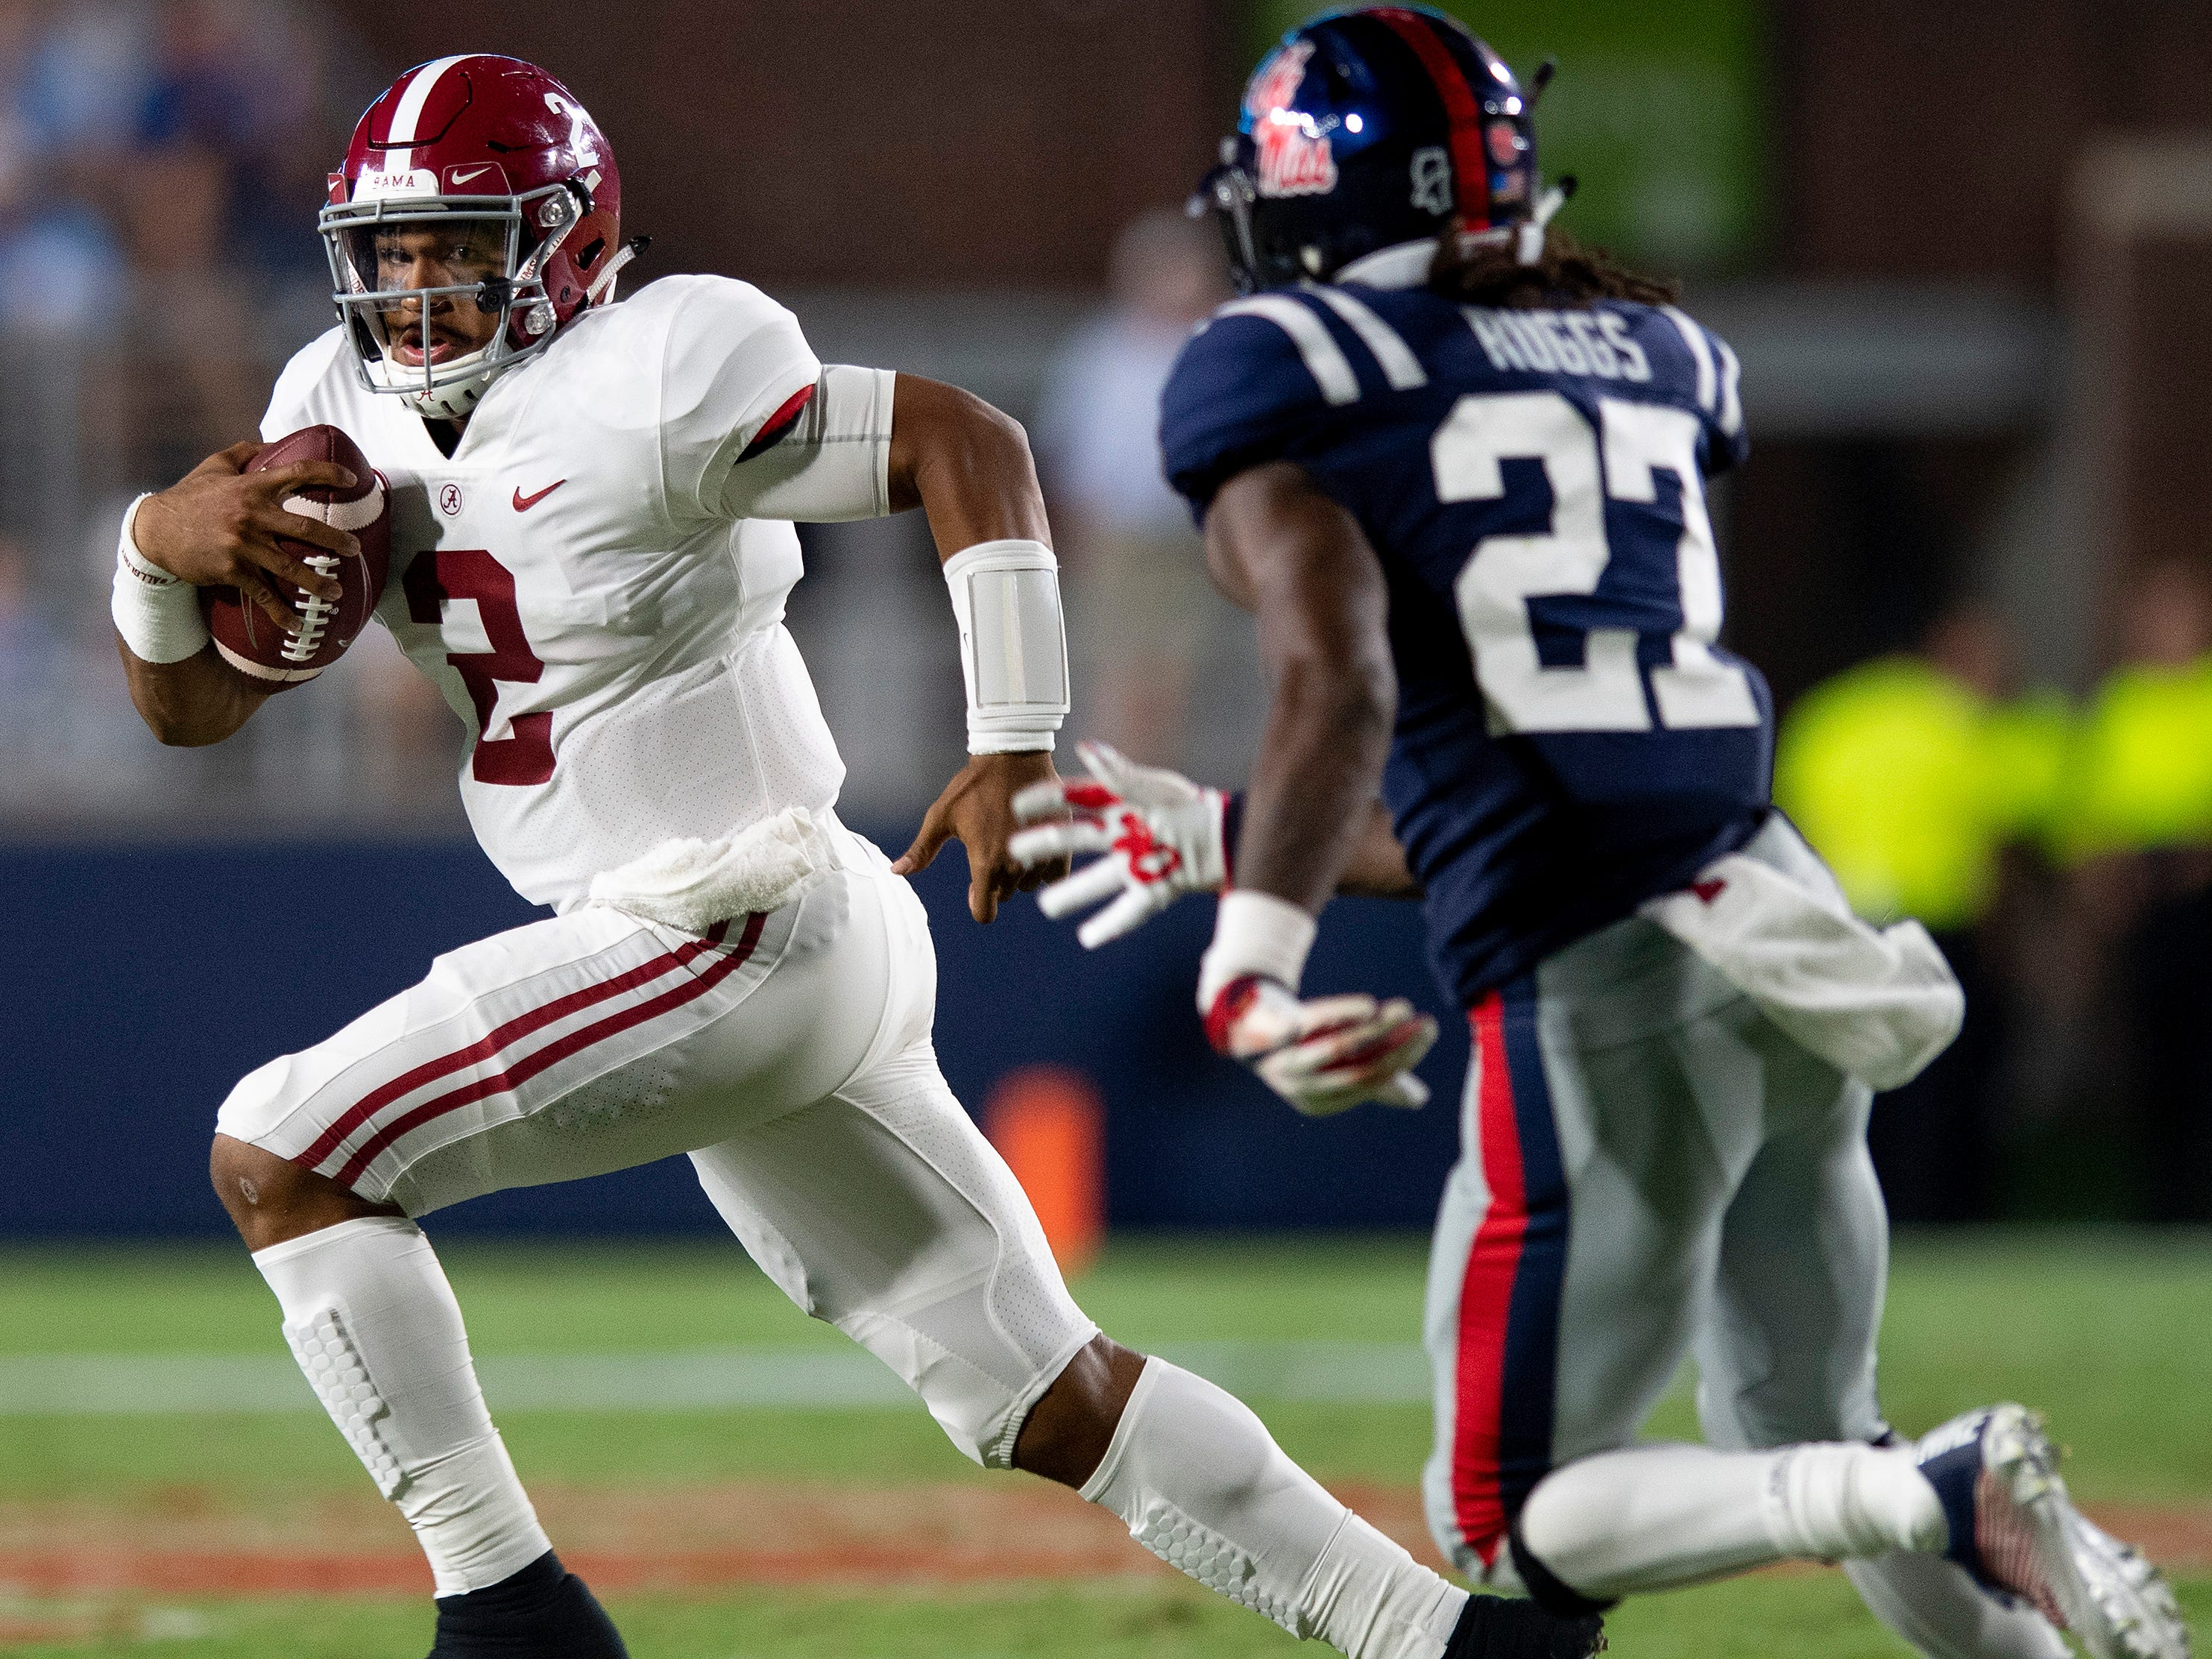 Alabama quarterback Jalen Hurts (2) carries against Ole Miss linebacker Kevontae' Ruggs (27) In first half action in Oxford, Ms., on Saturday September 15, 2018.